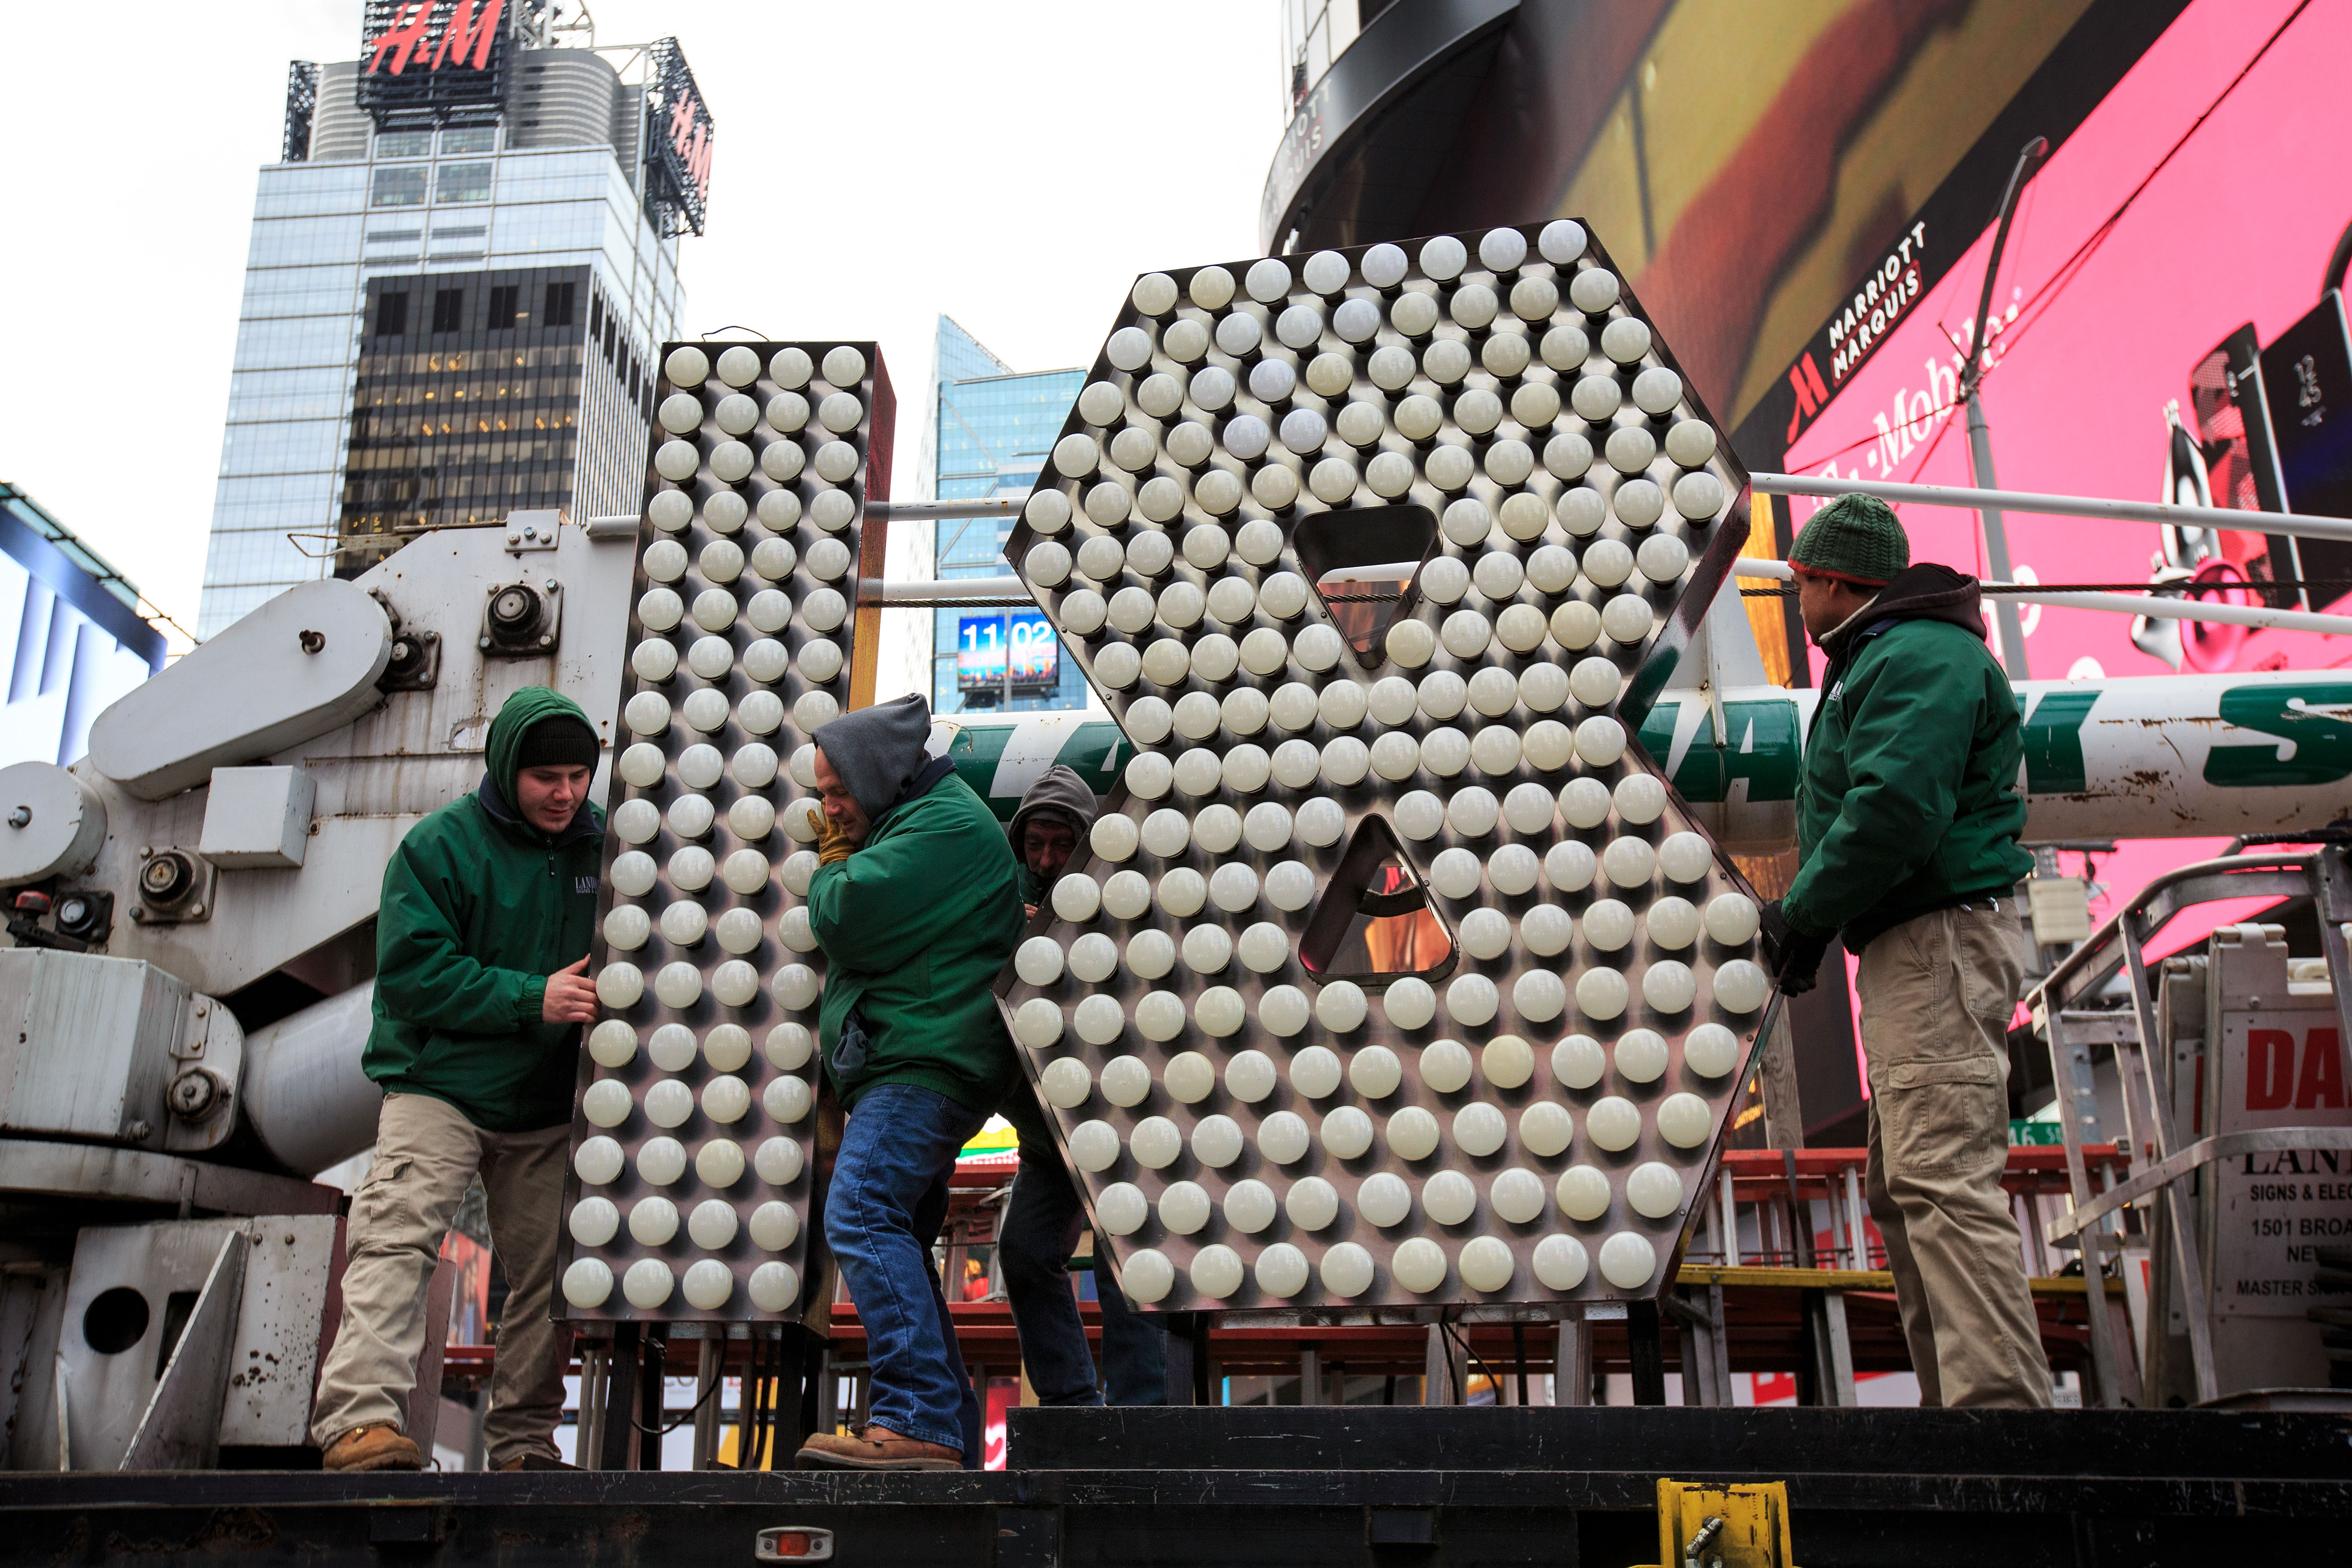 The numeral 18 depicted in lightbulbs for New York City's annual New Year's Eve Celebration in Times Square.